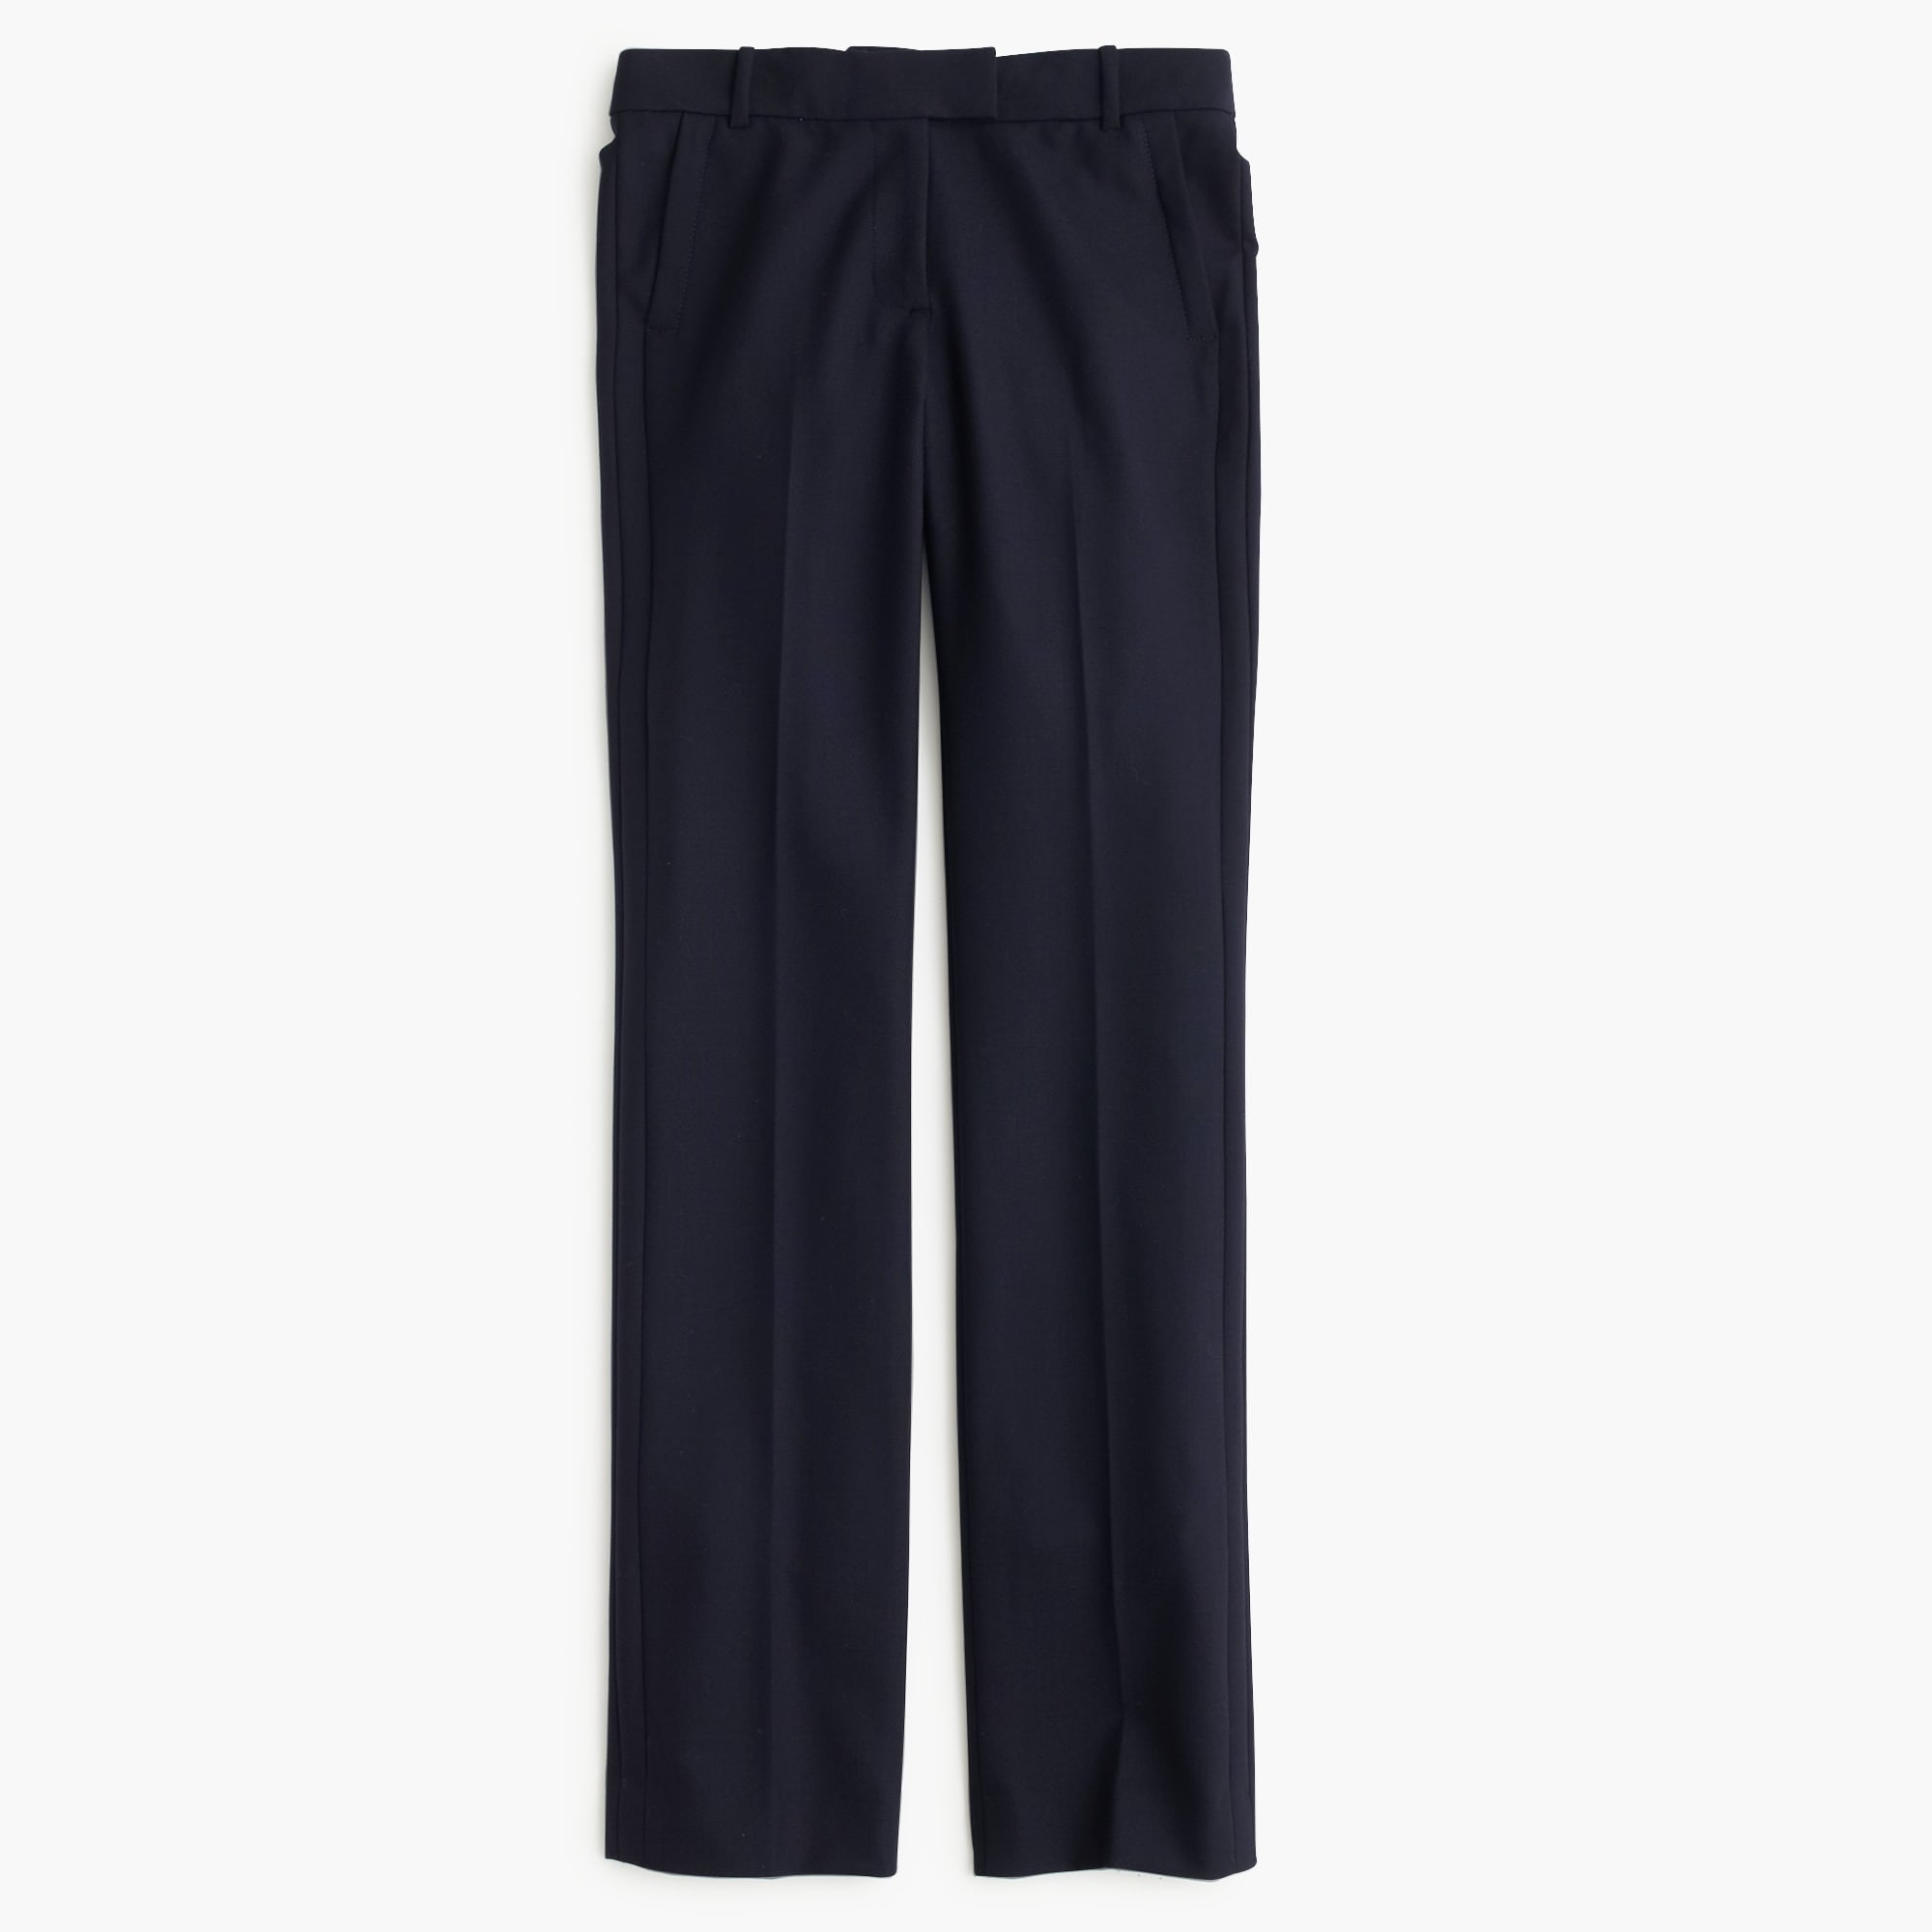 Petite Campbell trouser in two-way stretch wool